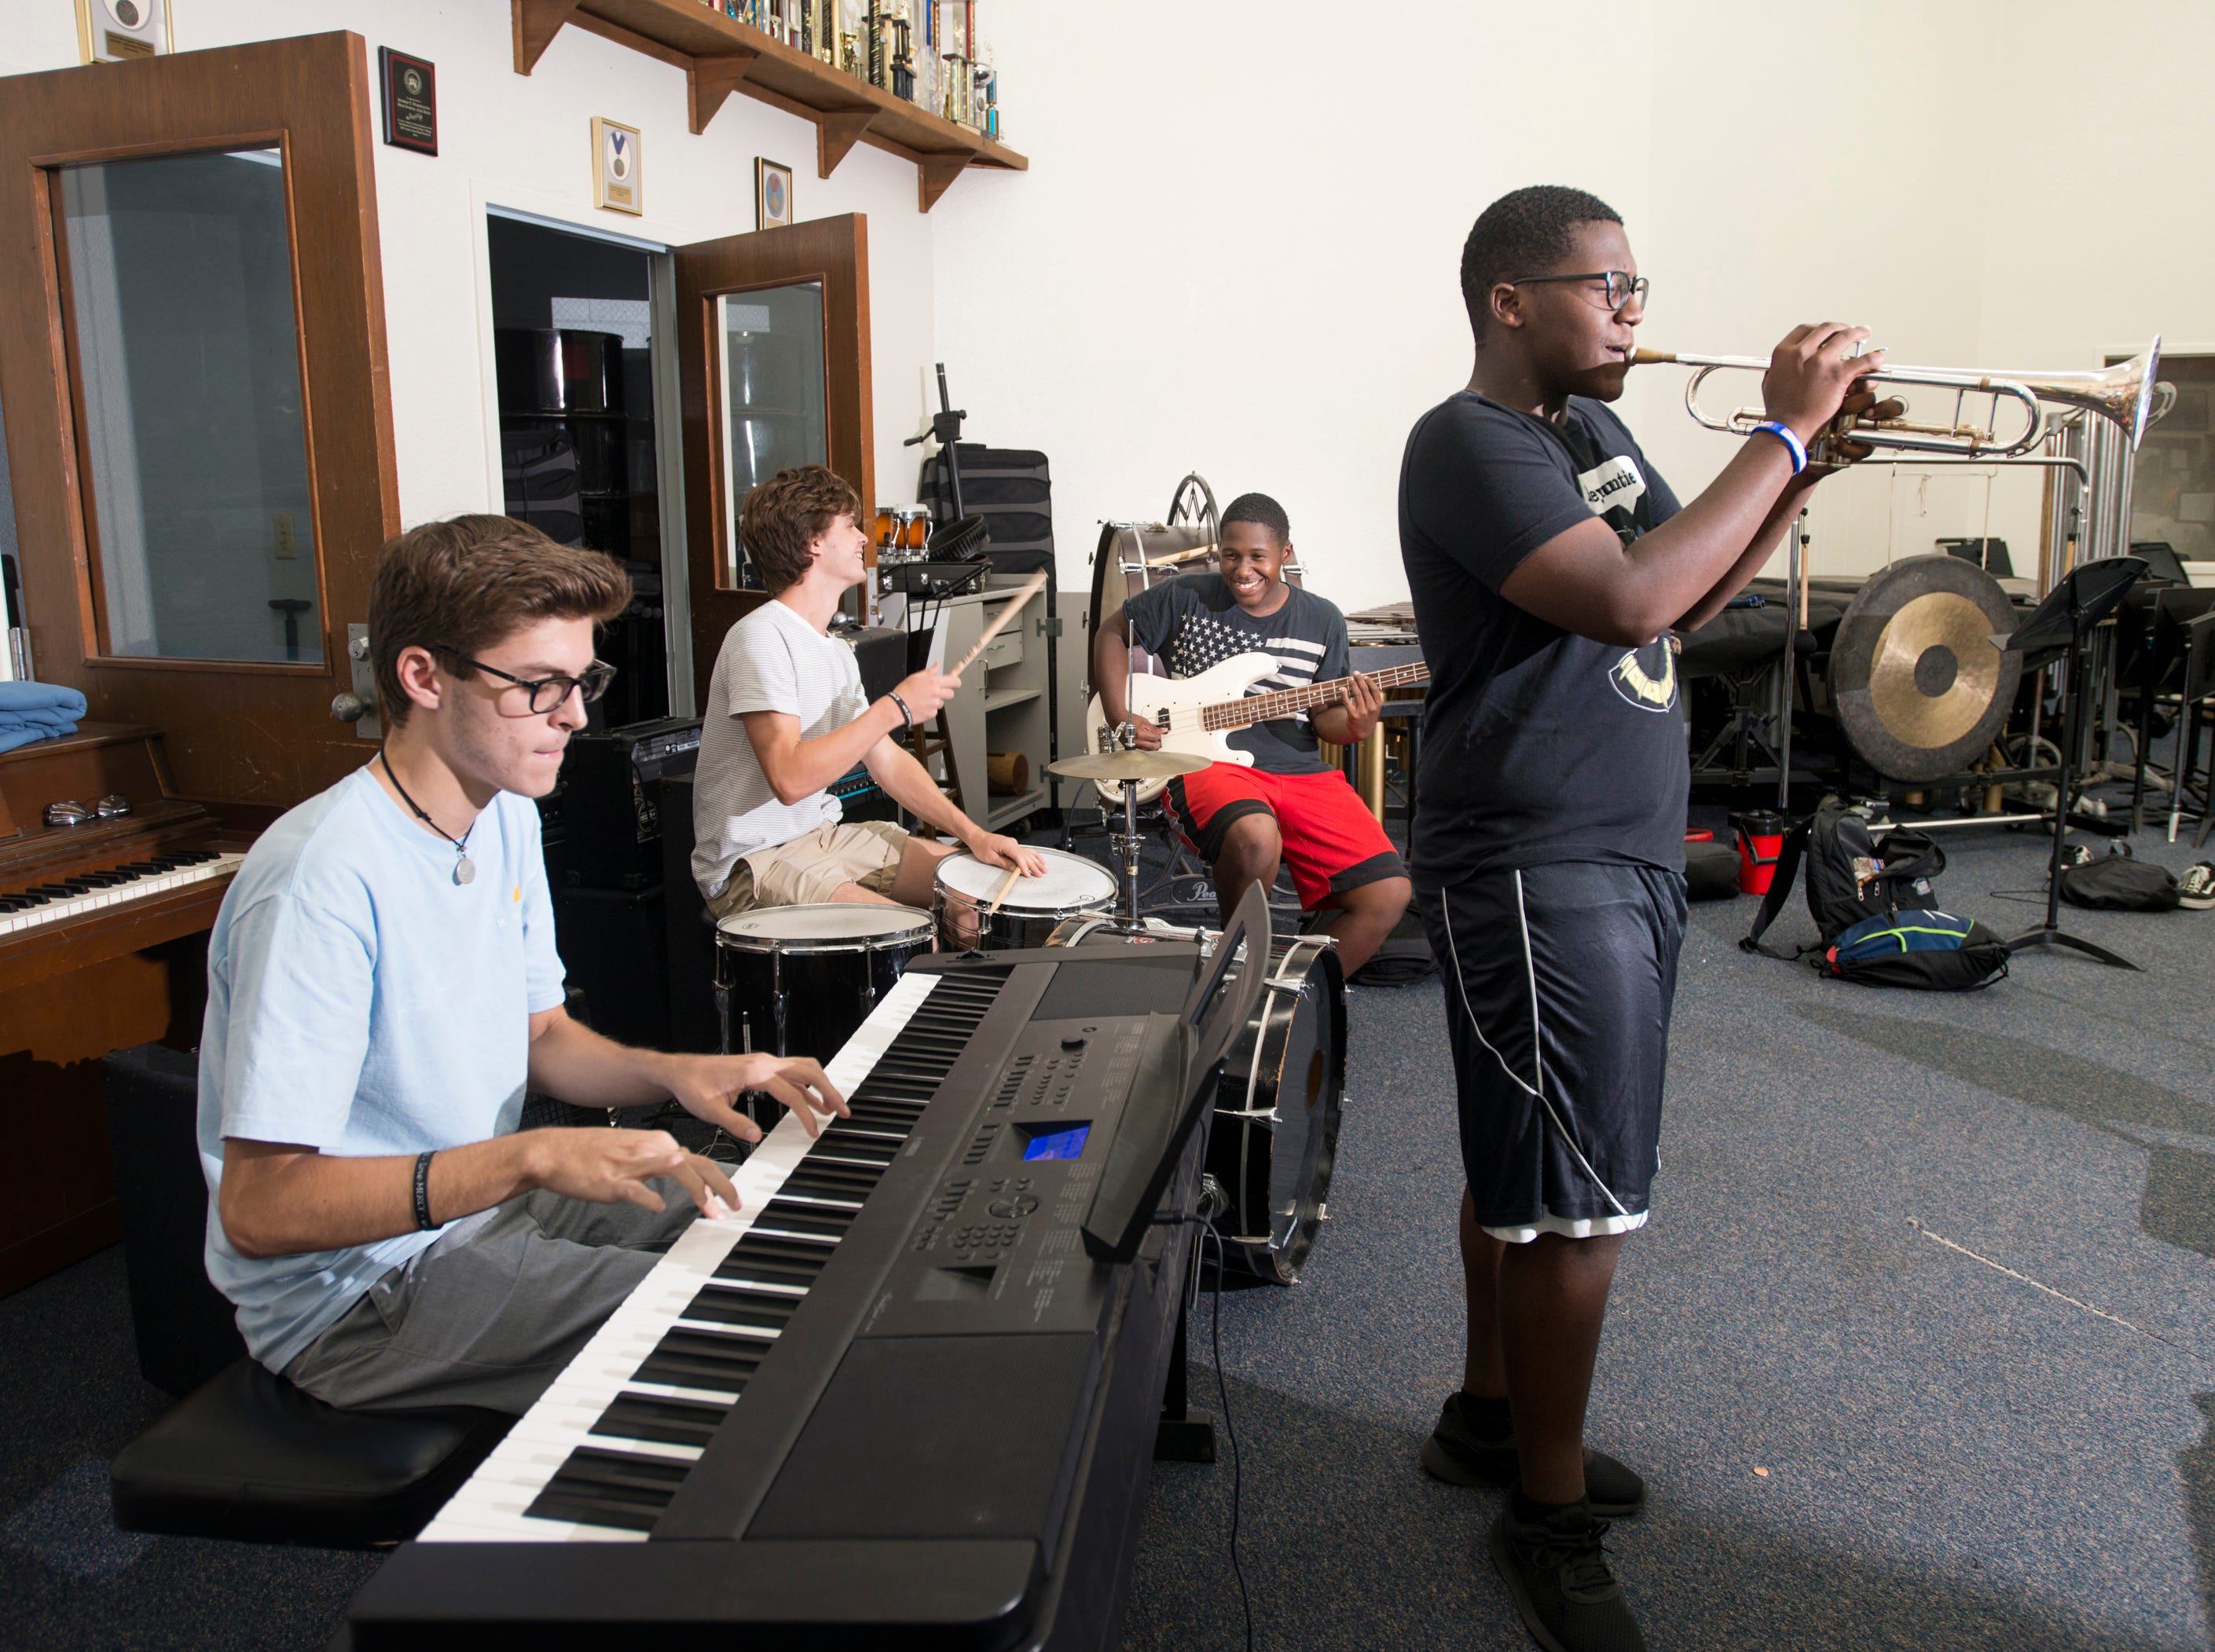 Soul Station jazz band members - keyboardist Bryce Lyublanovits, clockwise from left, drummer Chase Rogers, bass guitarist Andre Conner, and trumpeter Andrew Conner perform in the band room at Booker T. Washington High School in Pensacola on Friday, August 24, 2018.